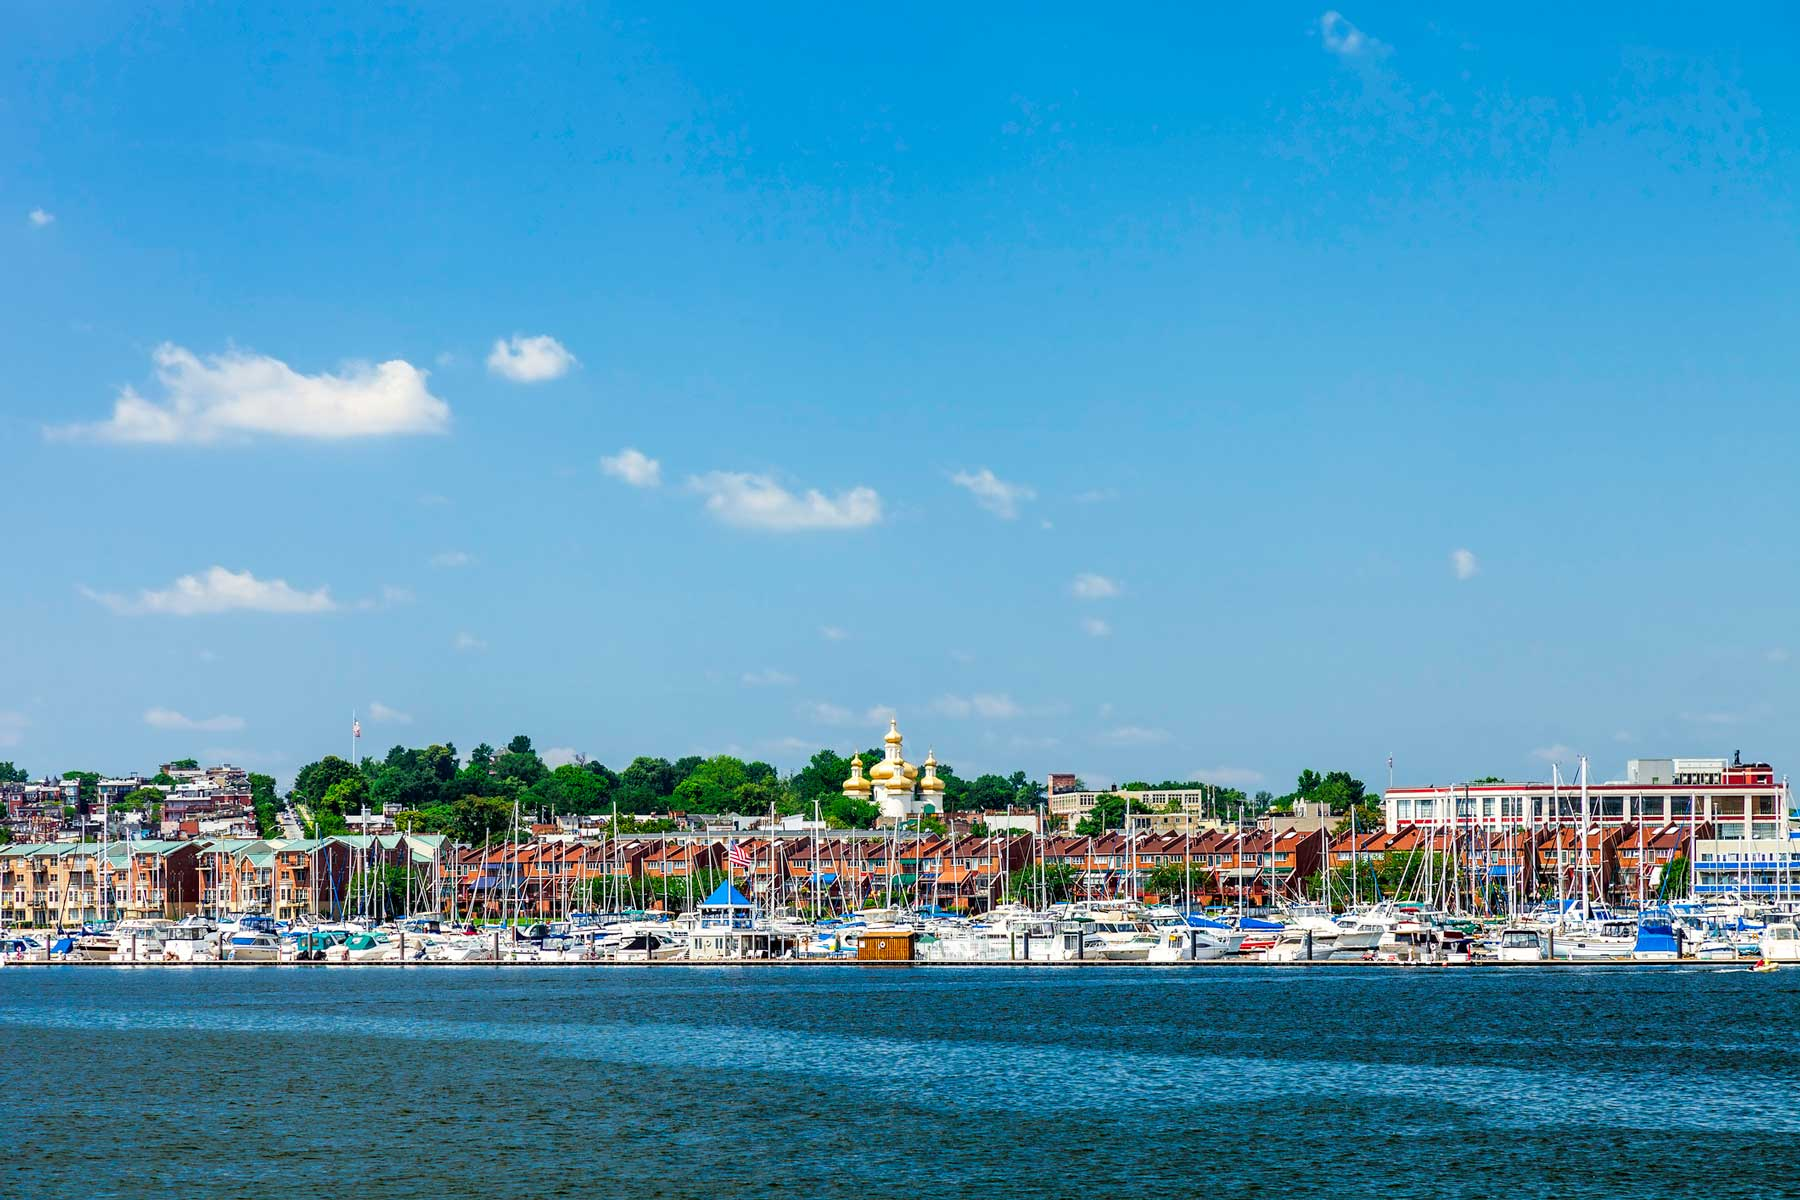 The Baltimore Inner Harbor Area where a Marina is enjoyed by many boaters and the gold topped St. Michael Ukrainian Orthodox Church on Eastern Avenue can be seen in the background.